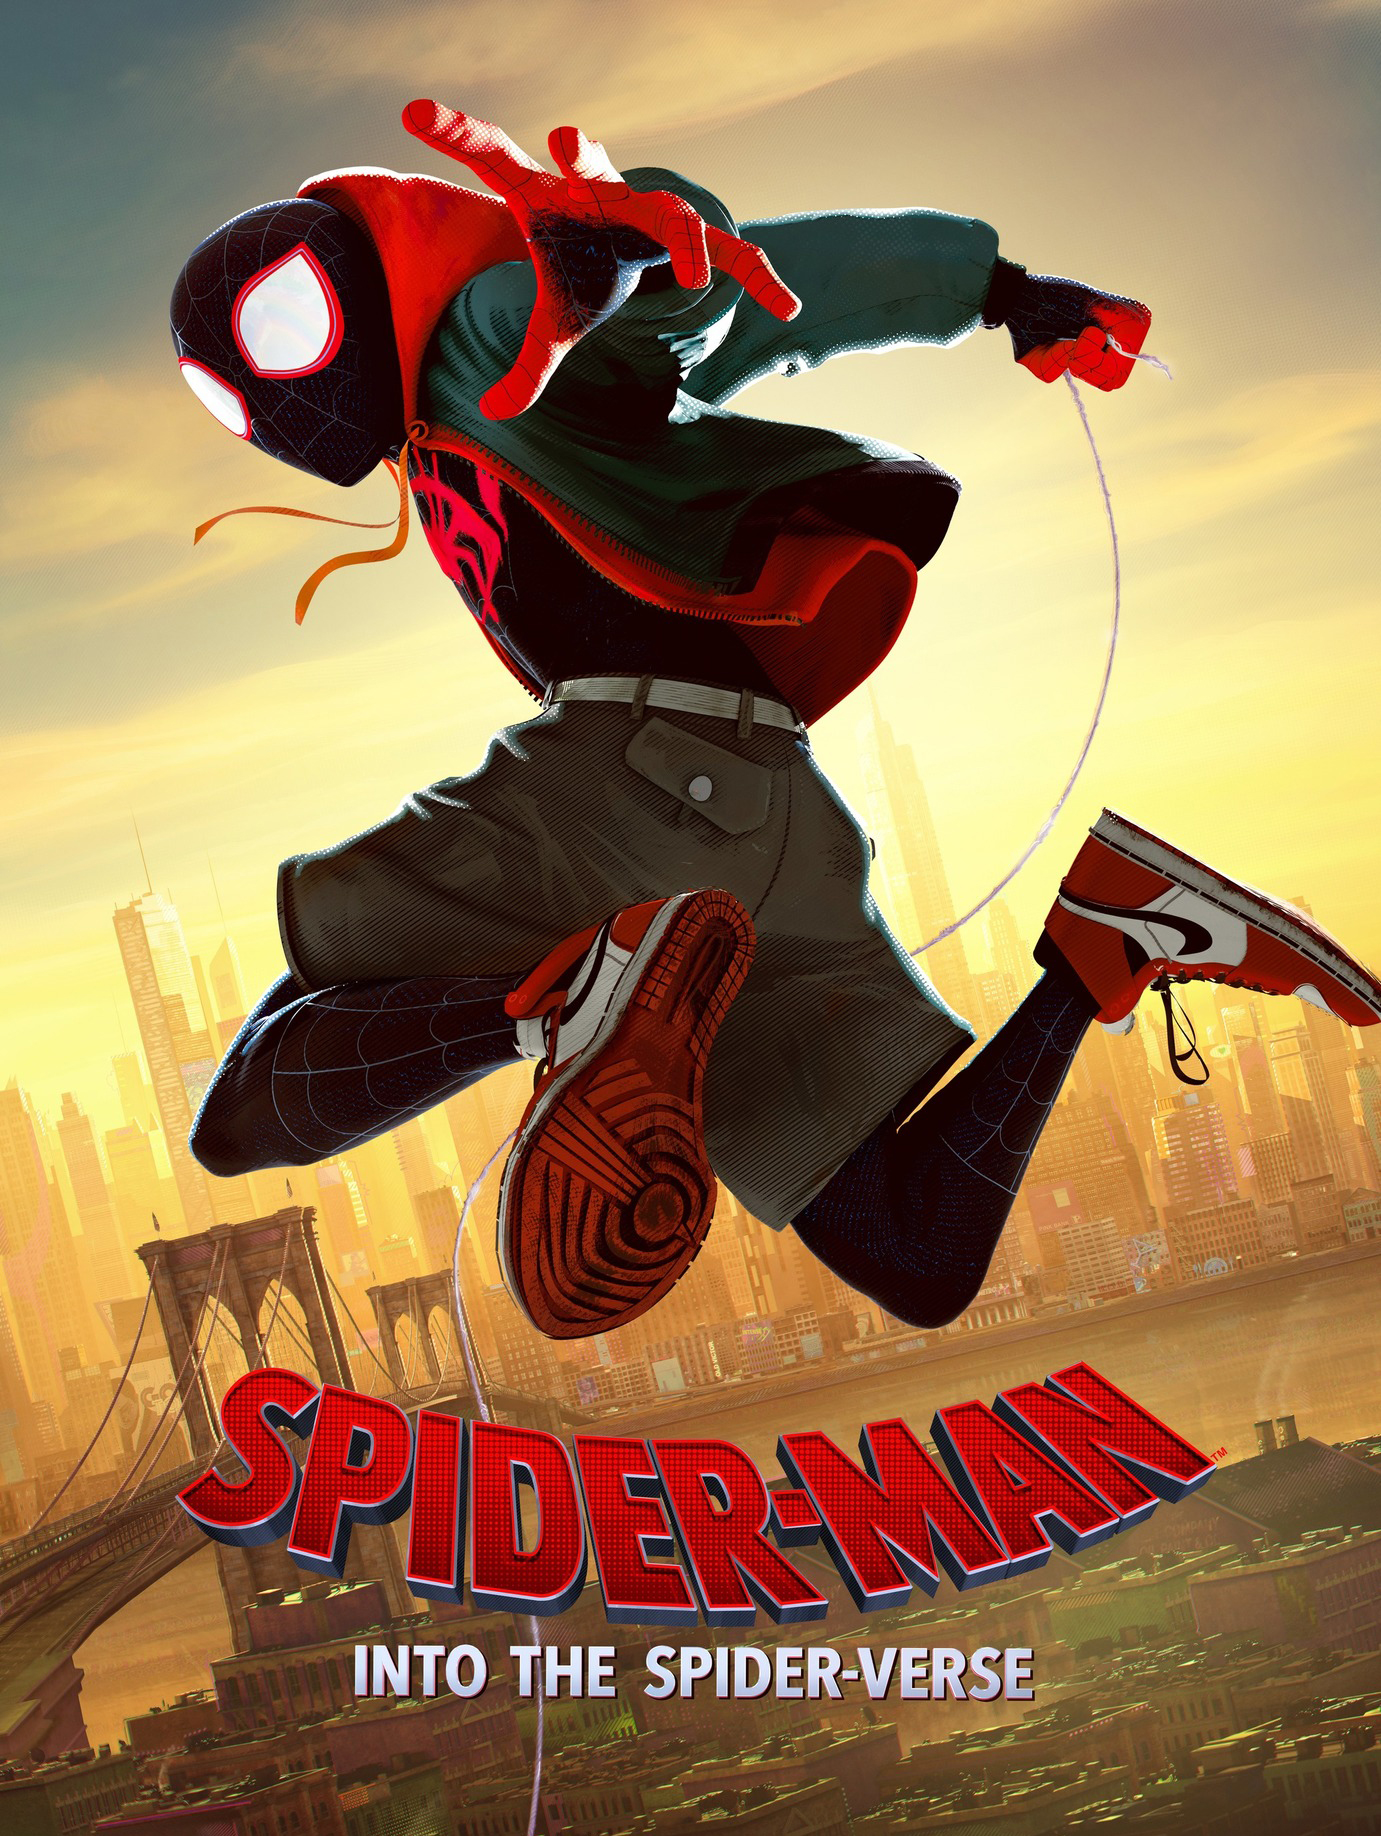 Poster phim Spider-Man: Into the Spider-Verse.